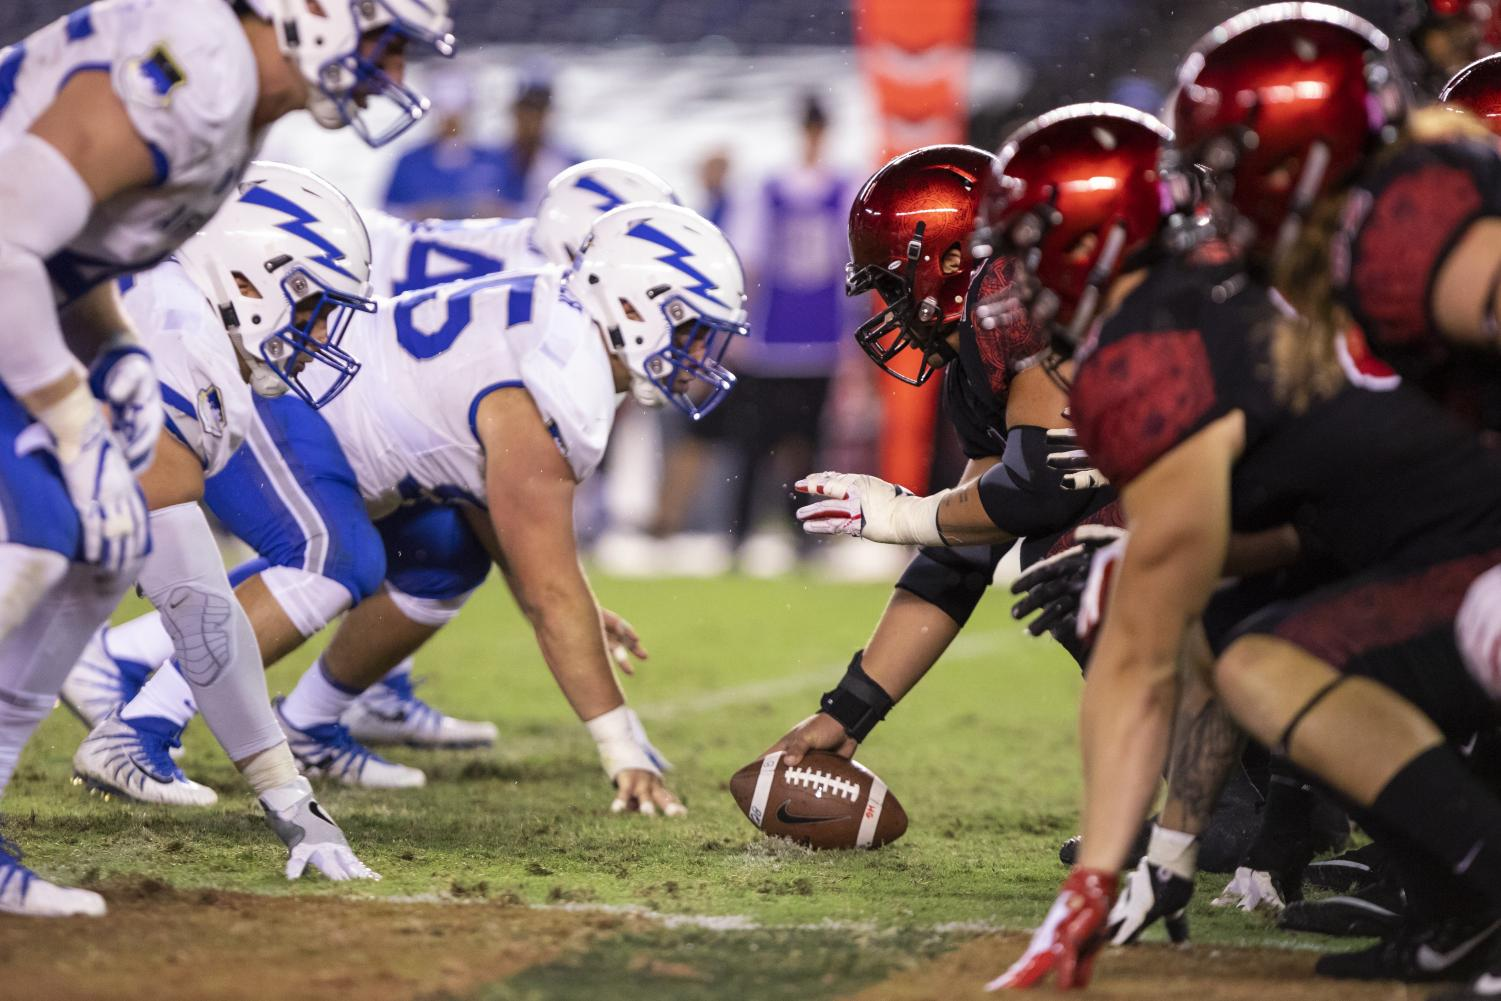 The SDSU offensive line lines up against Air Force during its 21-17 victory over the Falcons on Oct. 12 at SDCCU Stadium.